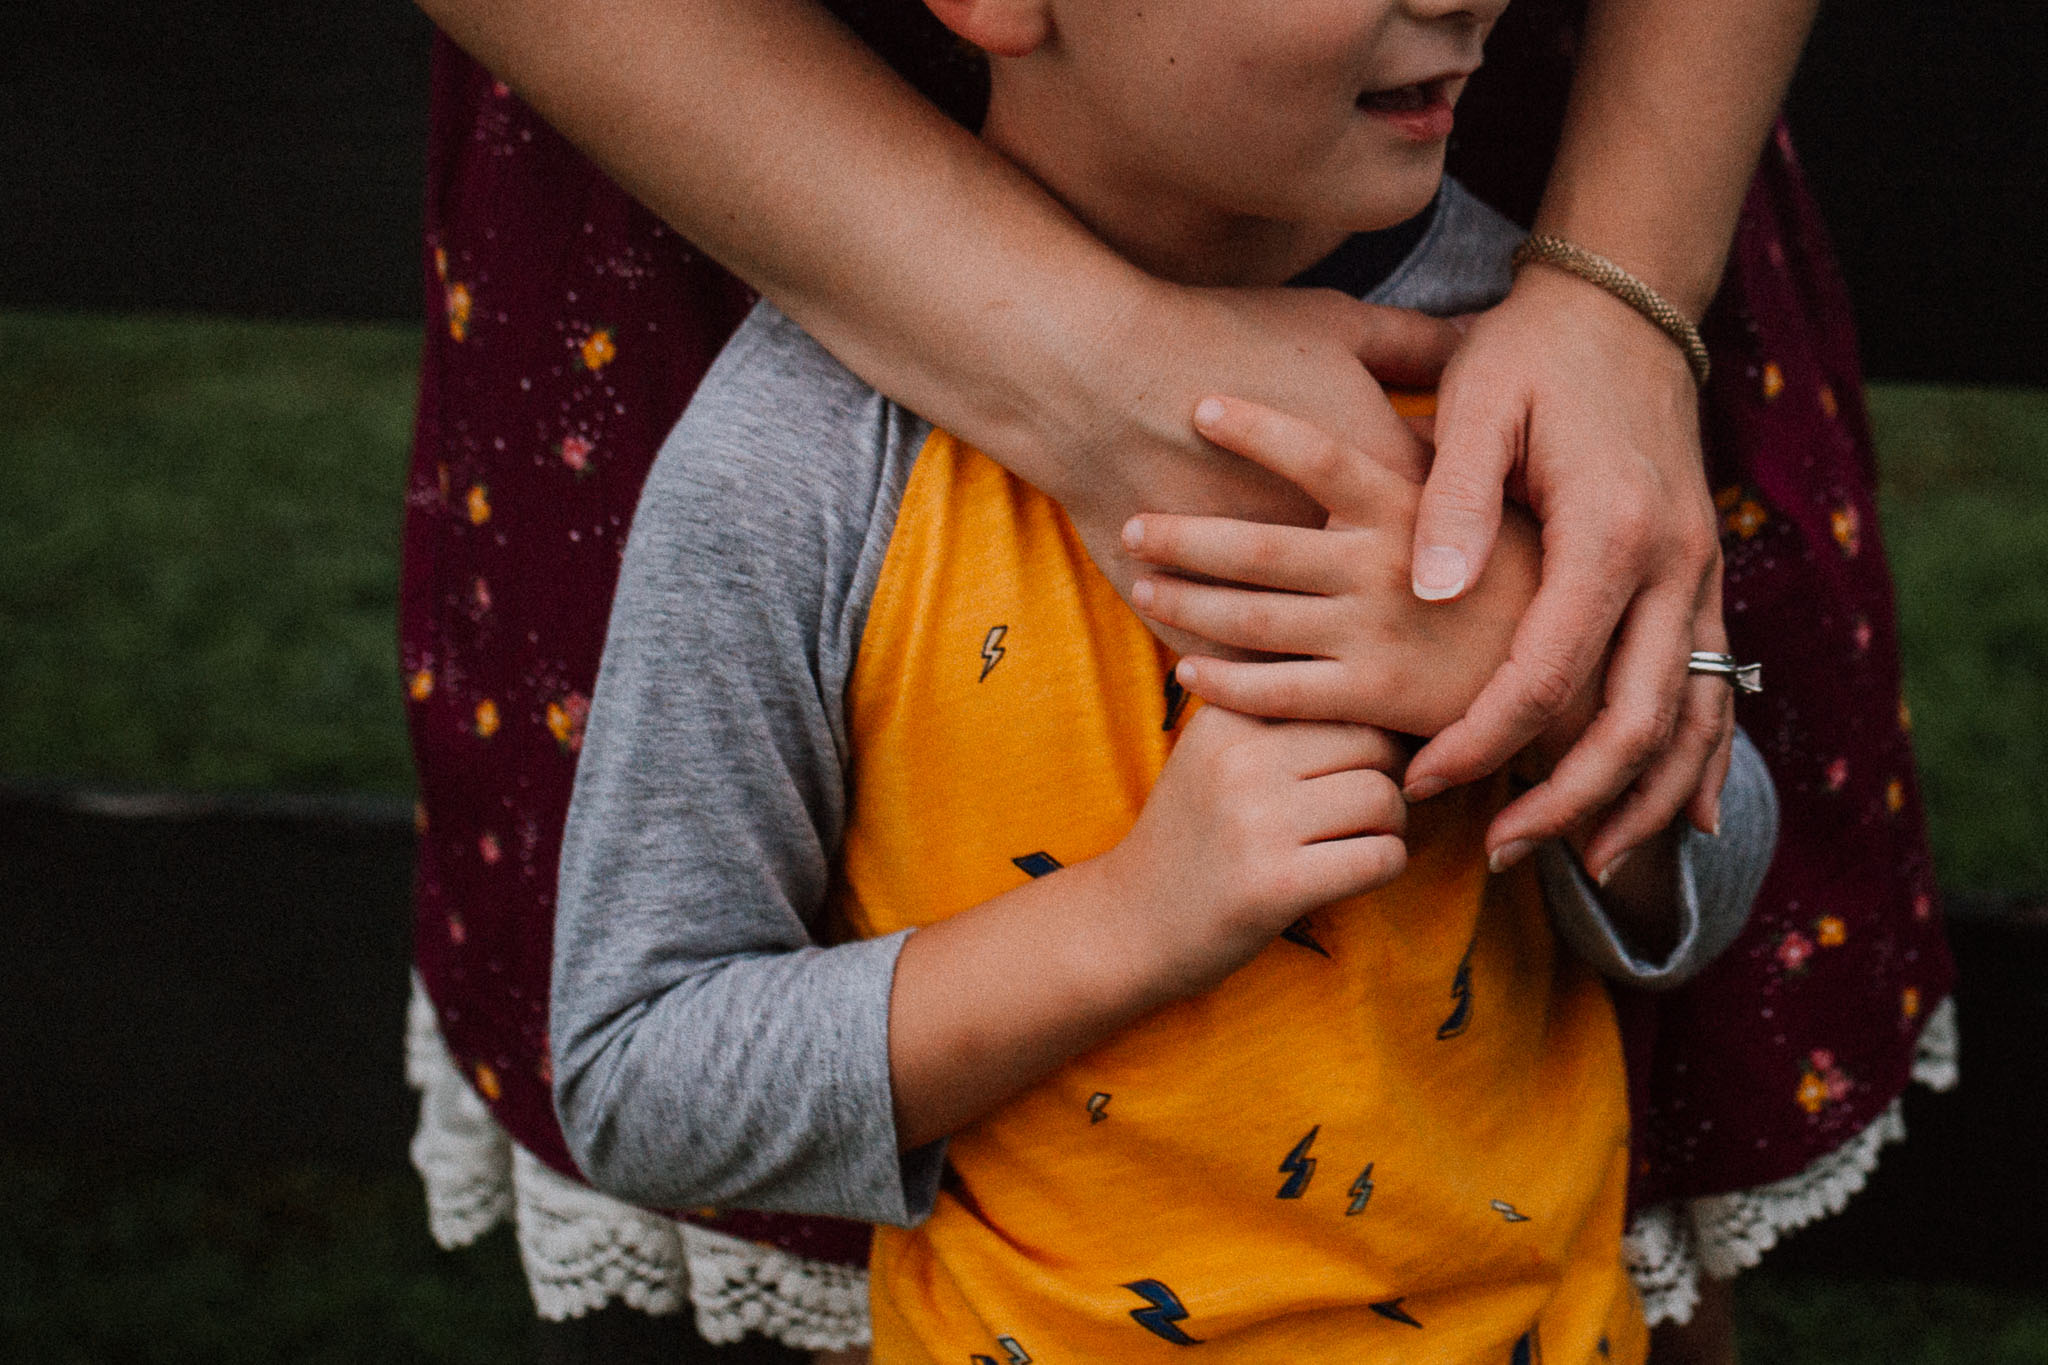 mother son details holing hands Claude Moore Park Heritage Farm Museum Sterling Virginia Lifestyle Documentary Fall Family Marti Austin Photography